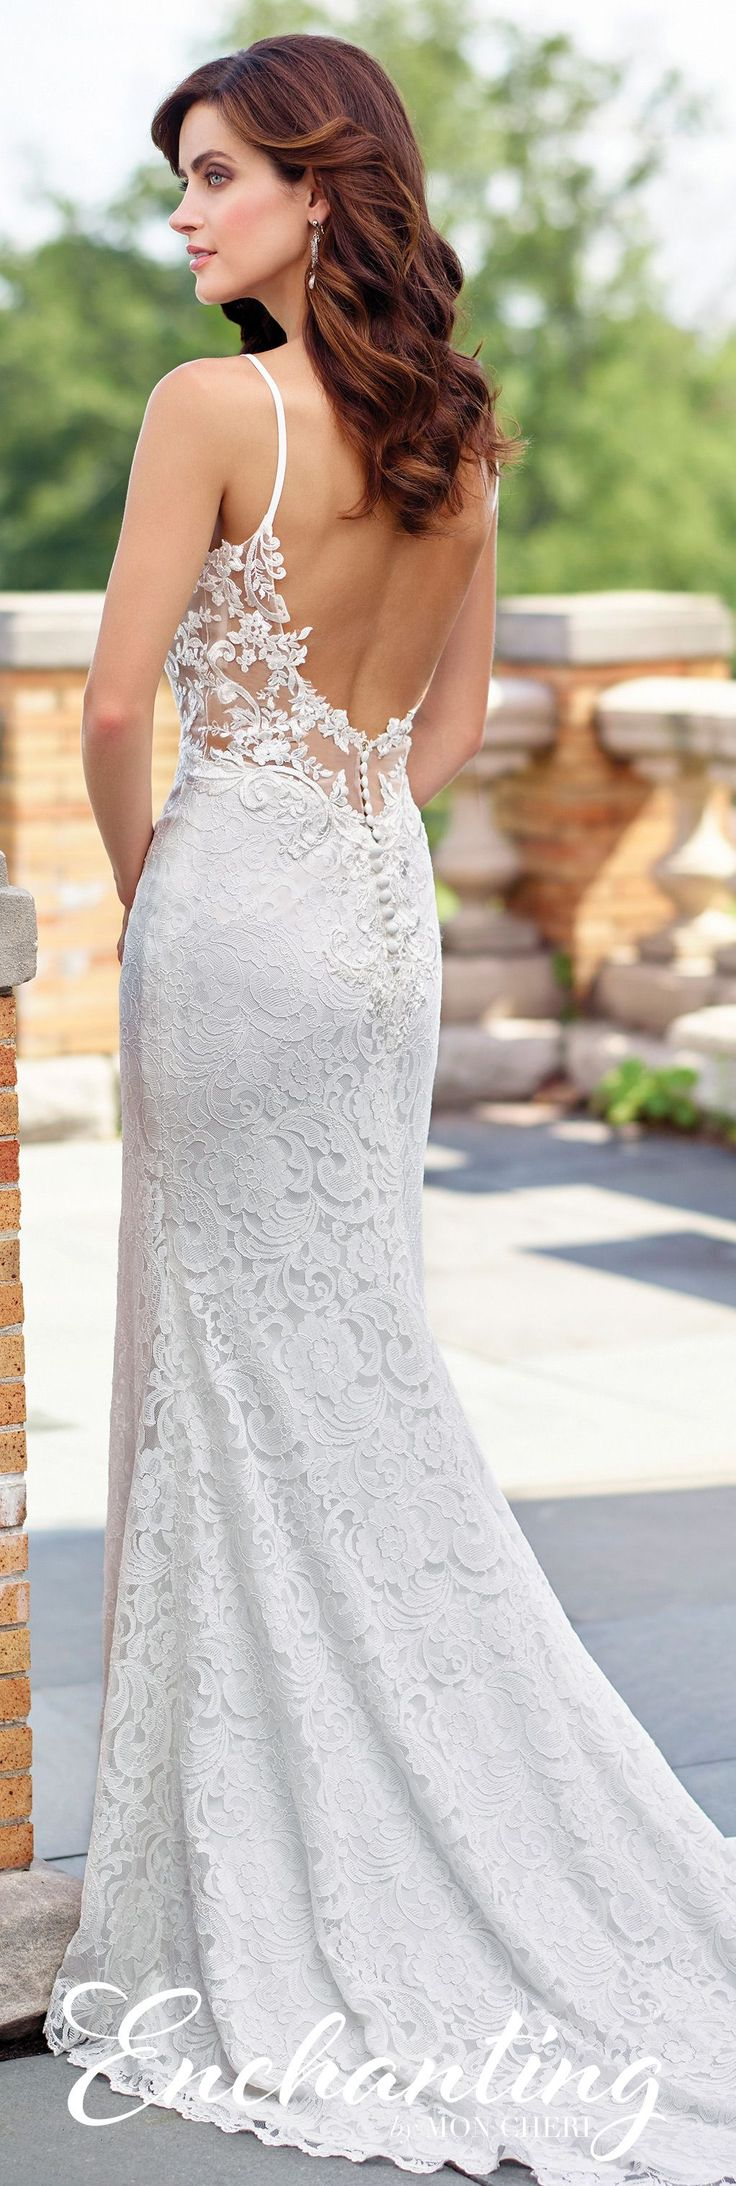 Best 25 spaghetti strap wedding dress ideas on pinterest for No back wedding dress